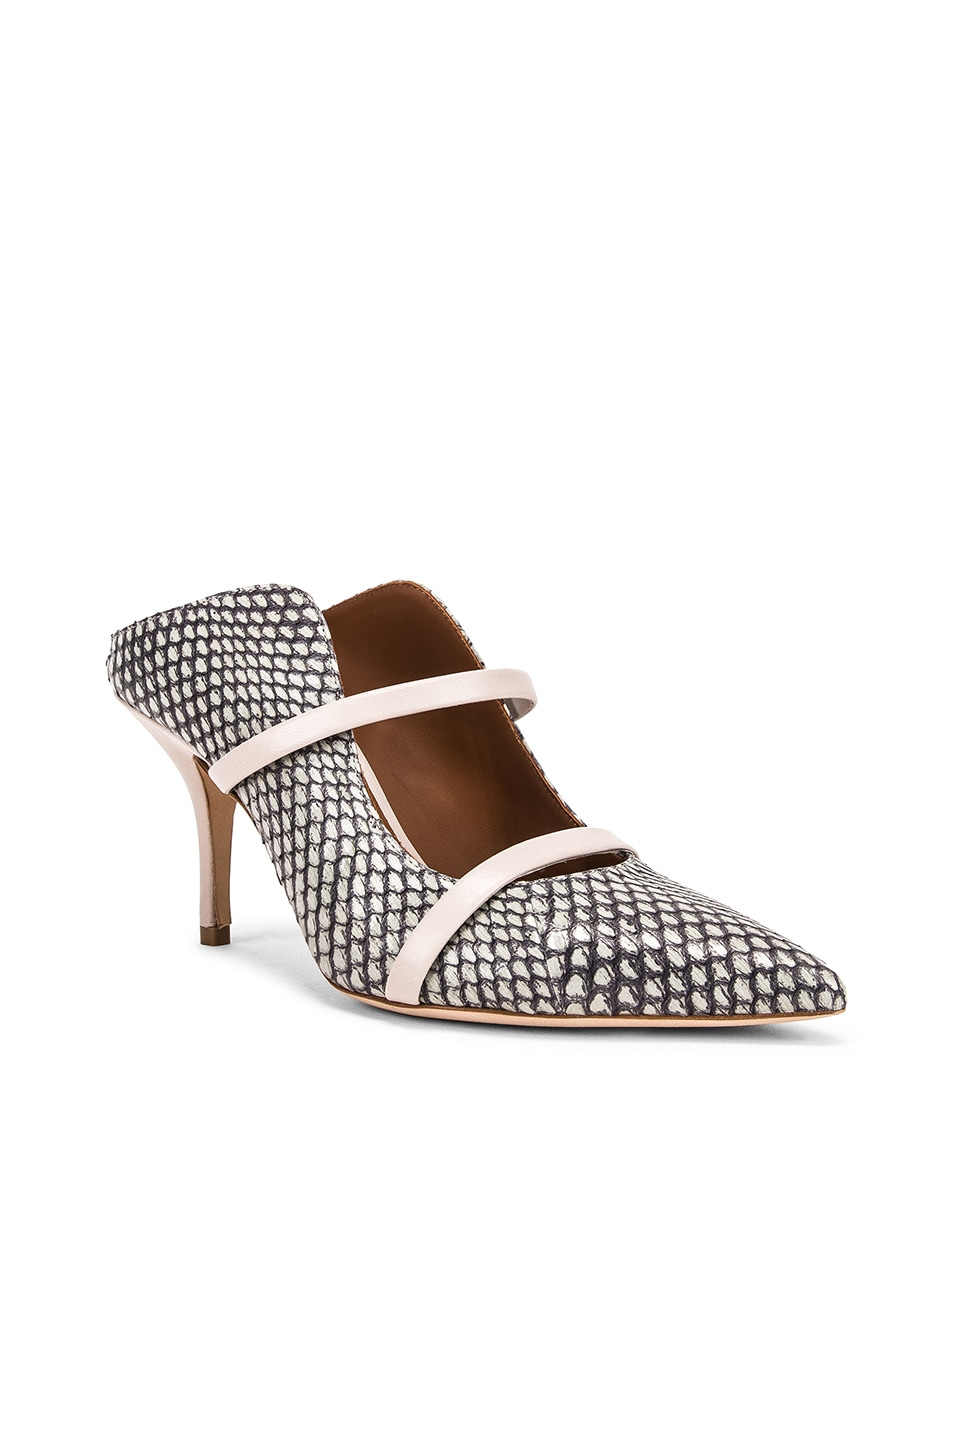 Image 2 of Malone Souliers Maureen MS 70 Heel in Peppermint & Grey